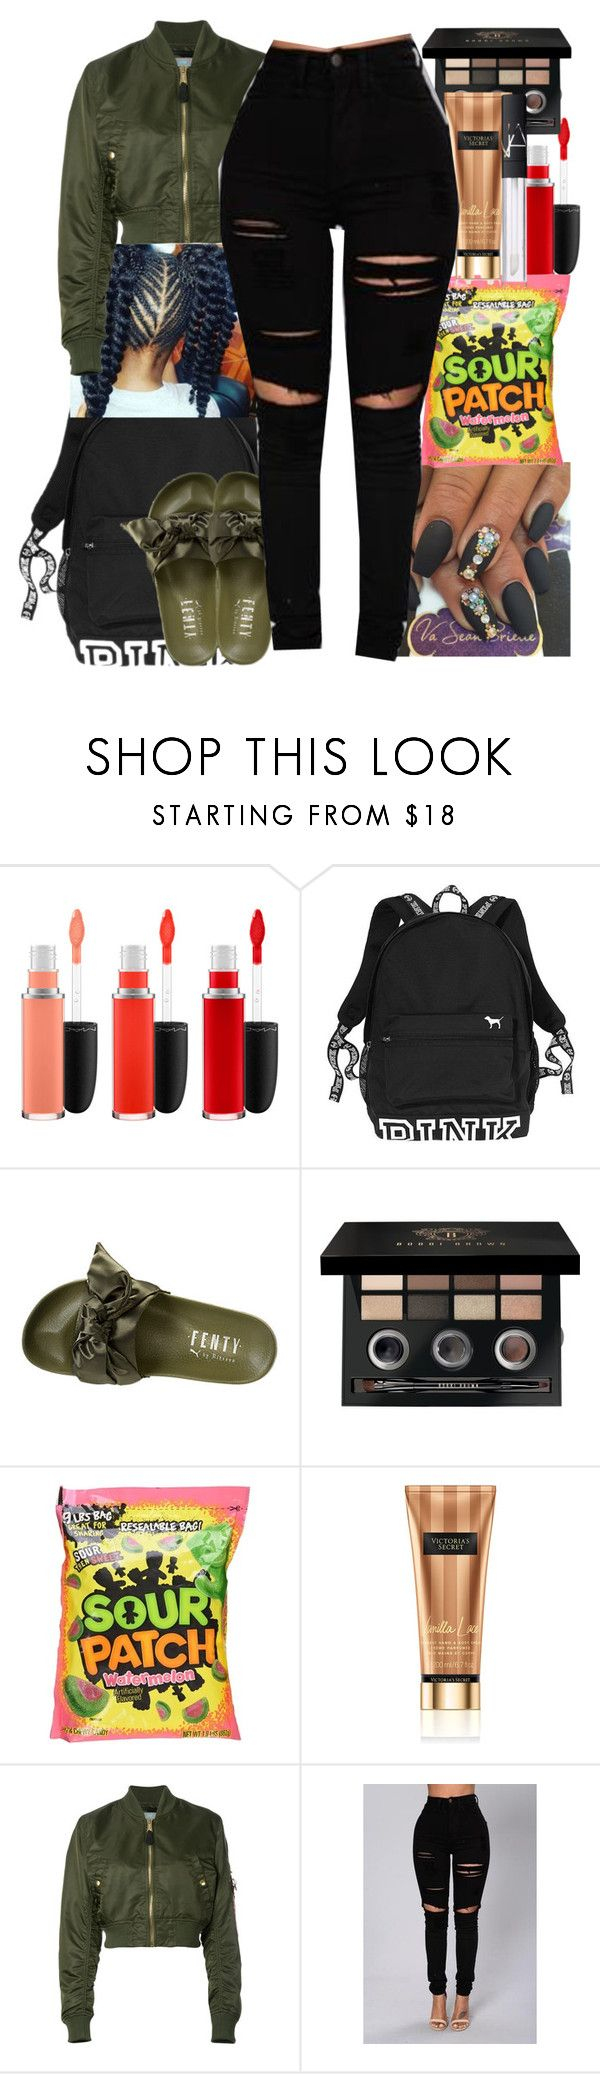 """""""I Might Look Expensive"""" by queen-sugah900 ❤ liked on Polyvore featuring MAC Cosmetics, Puma, Bobbi Brown Cosmetics, Victoria's Secret, Alpha Industries and NARS Cosmetics"""